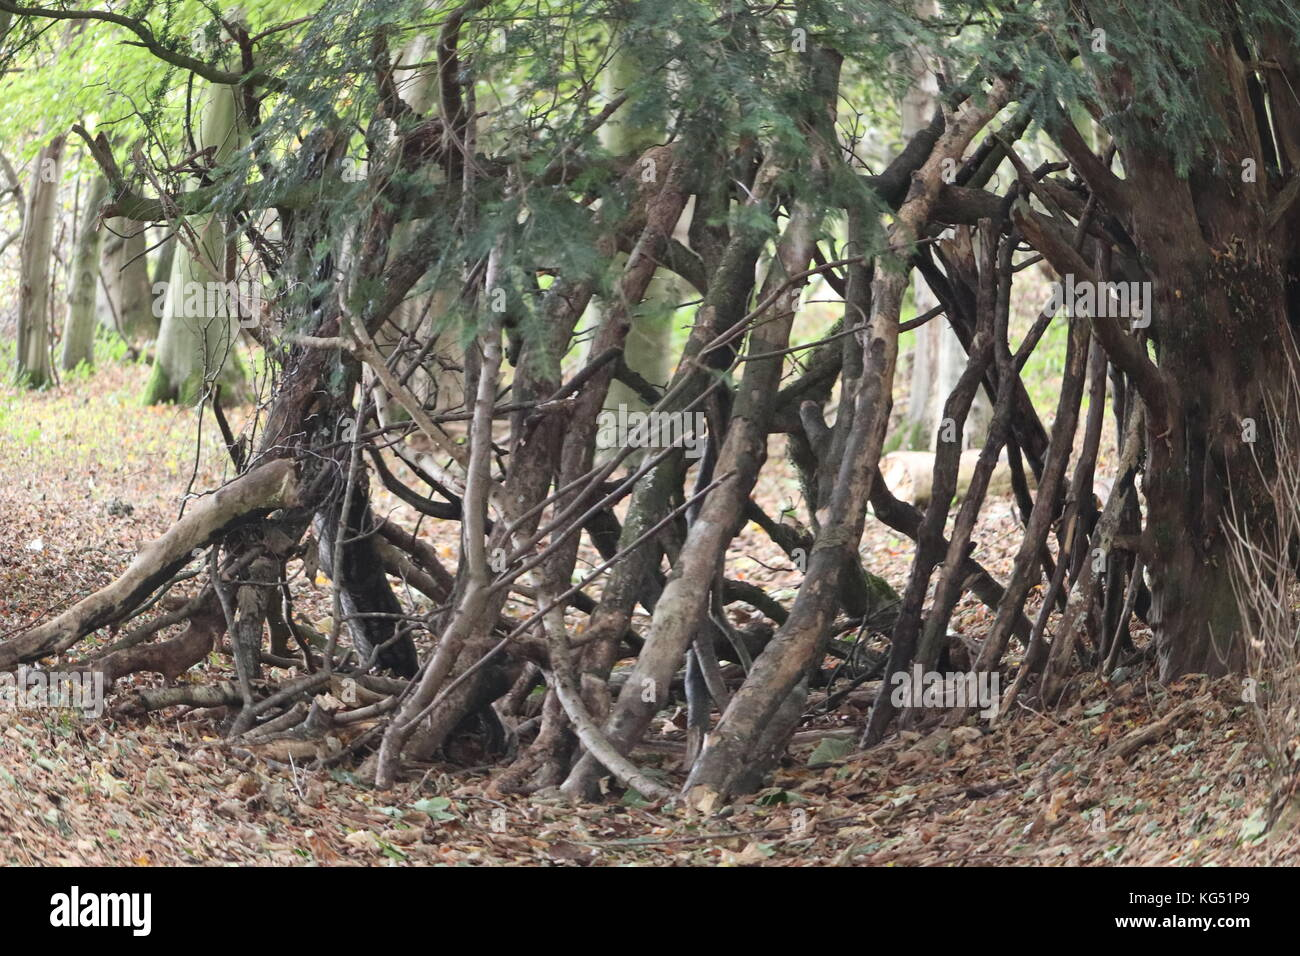 Roses In Garden: Entwined Trees Stock Photos & Entwined Trees Stock Images